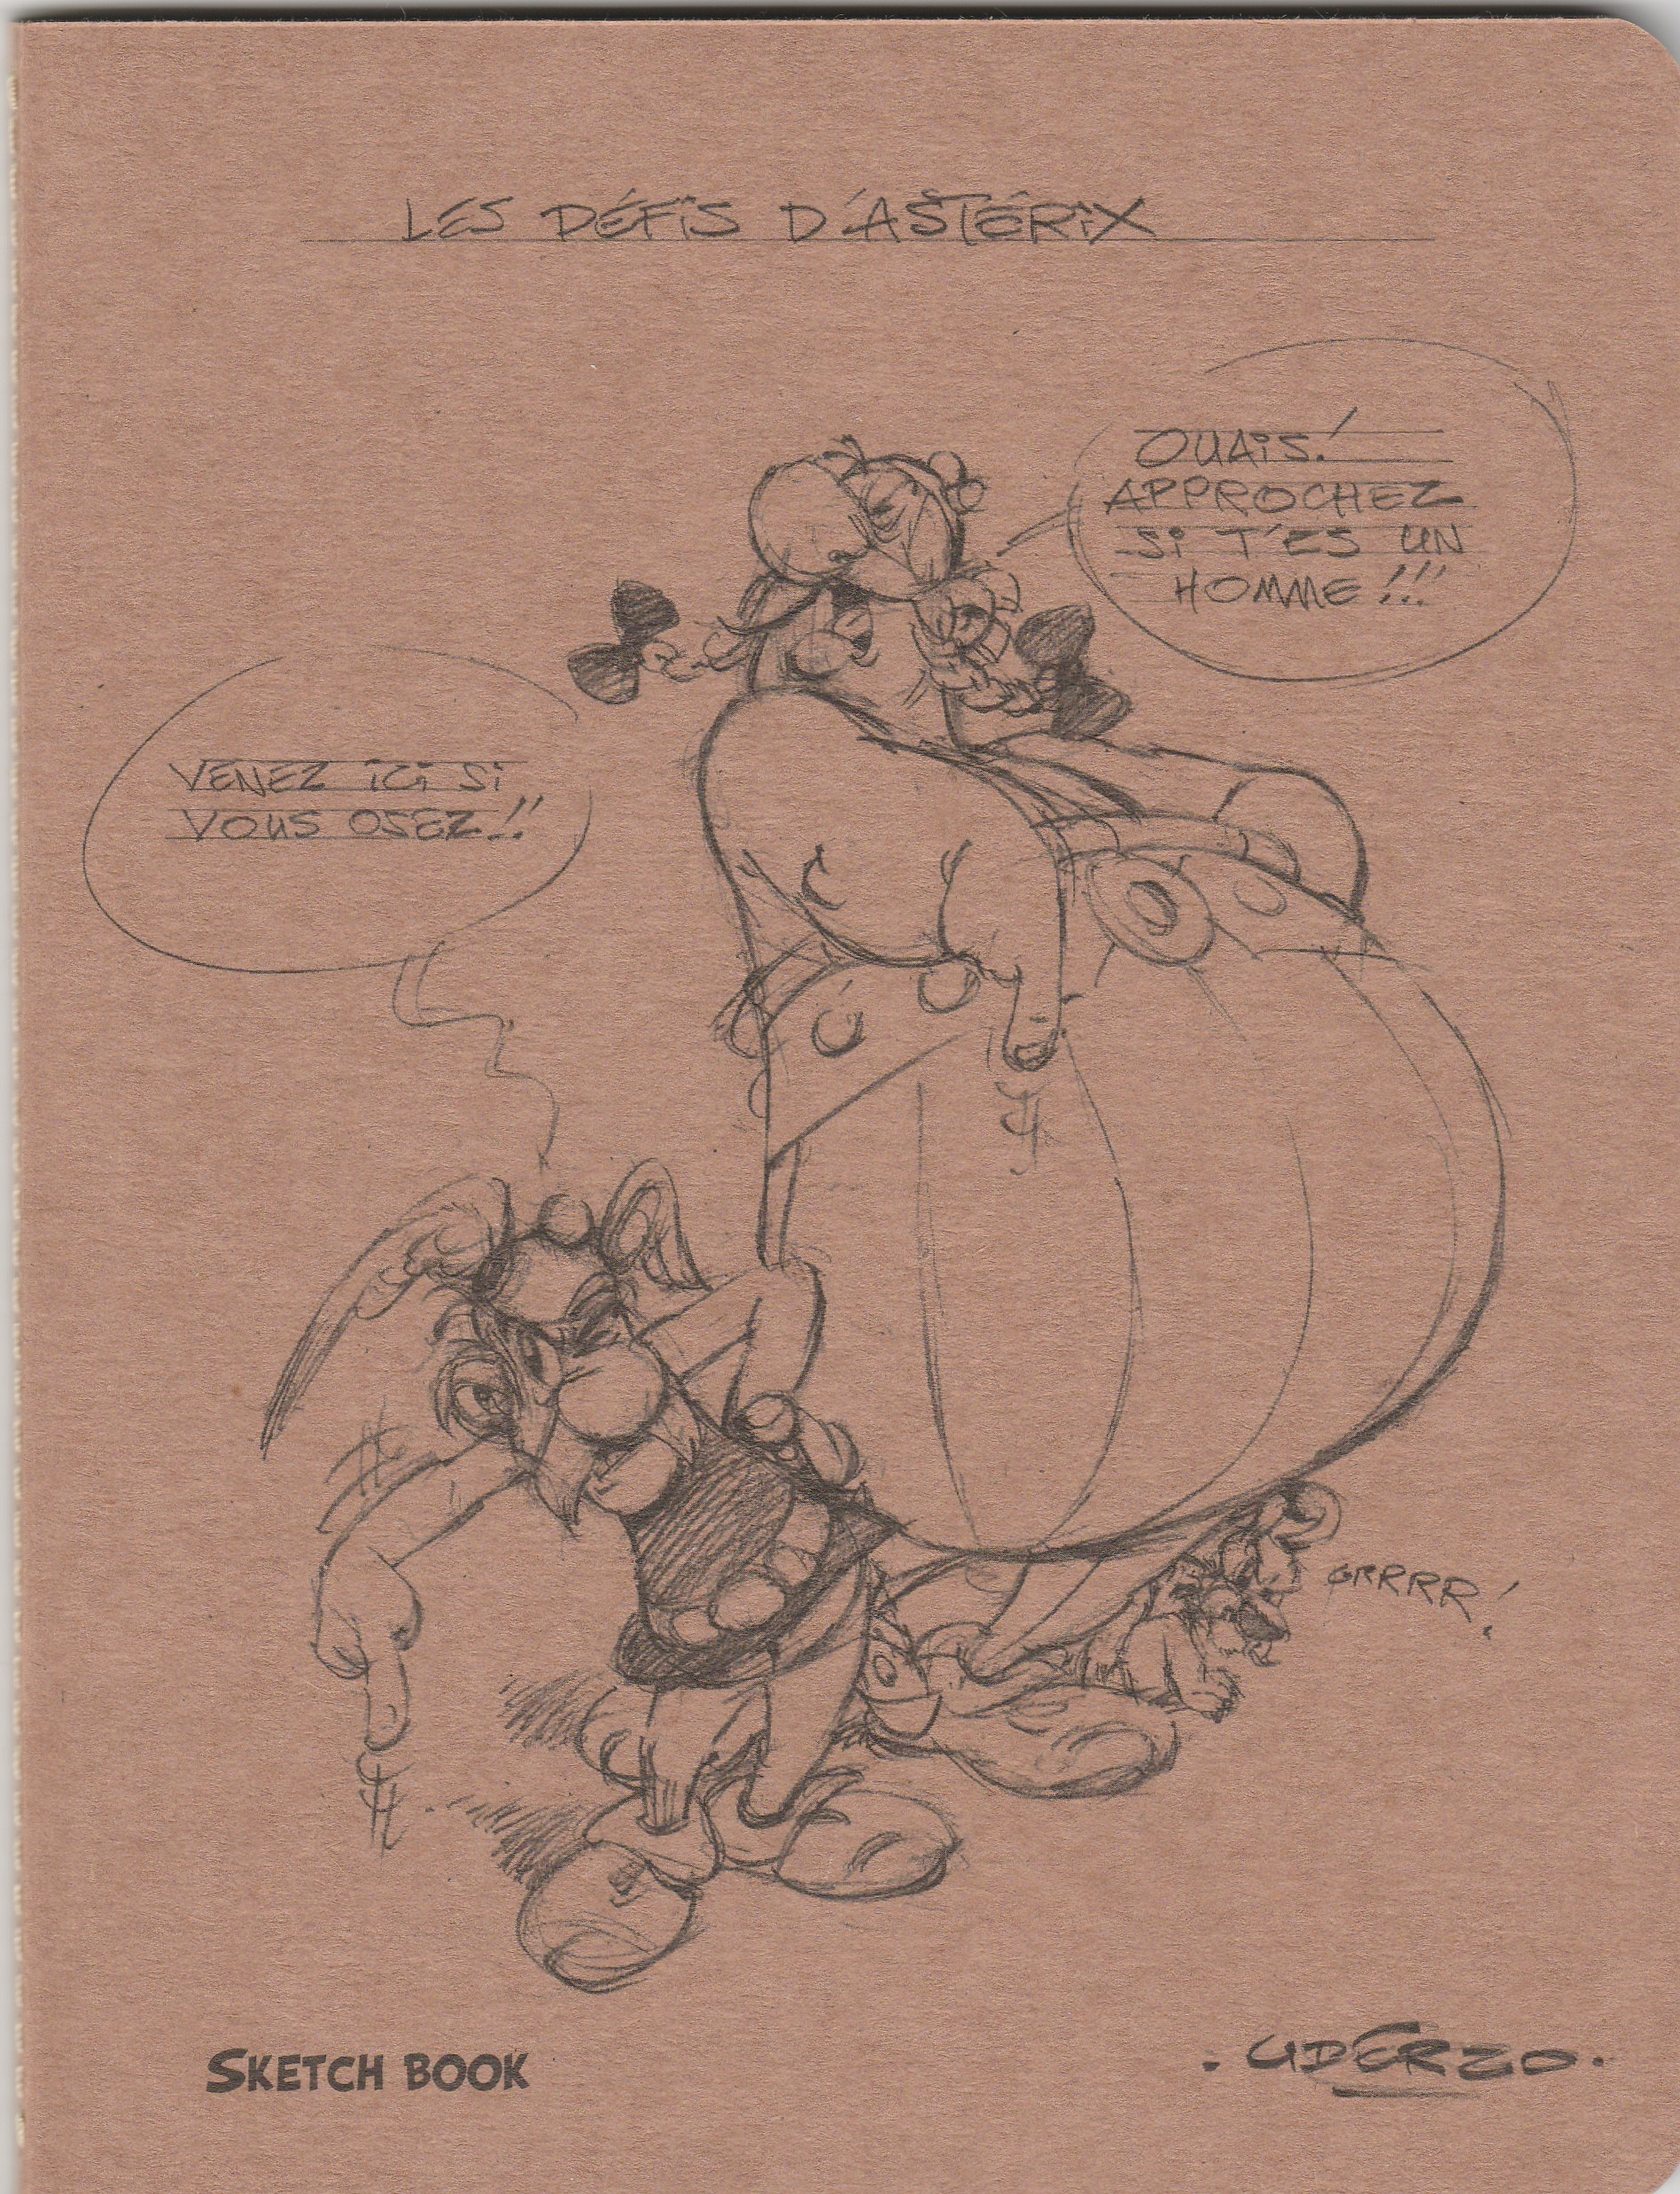 Asterix by Clairefontaine A5 Sketchbook